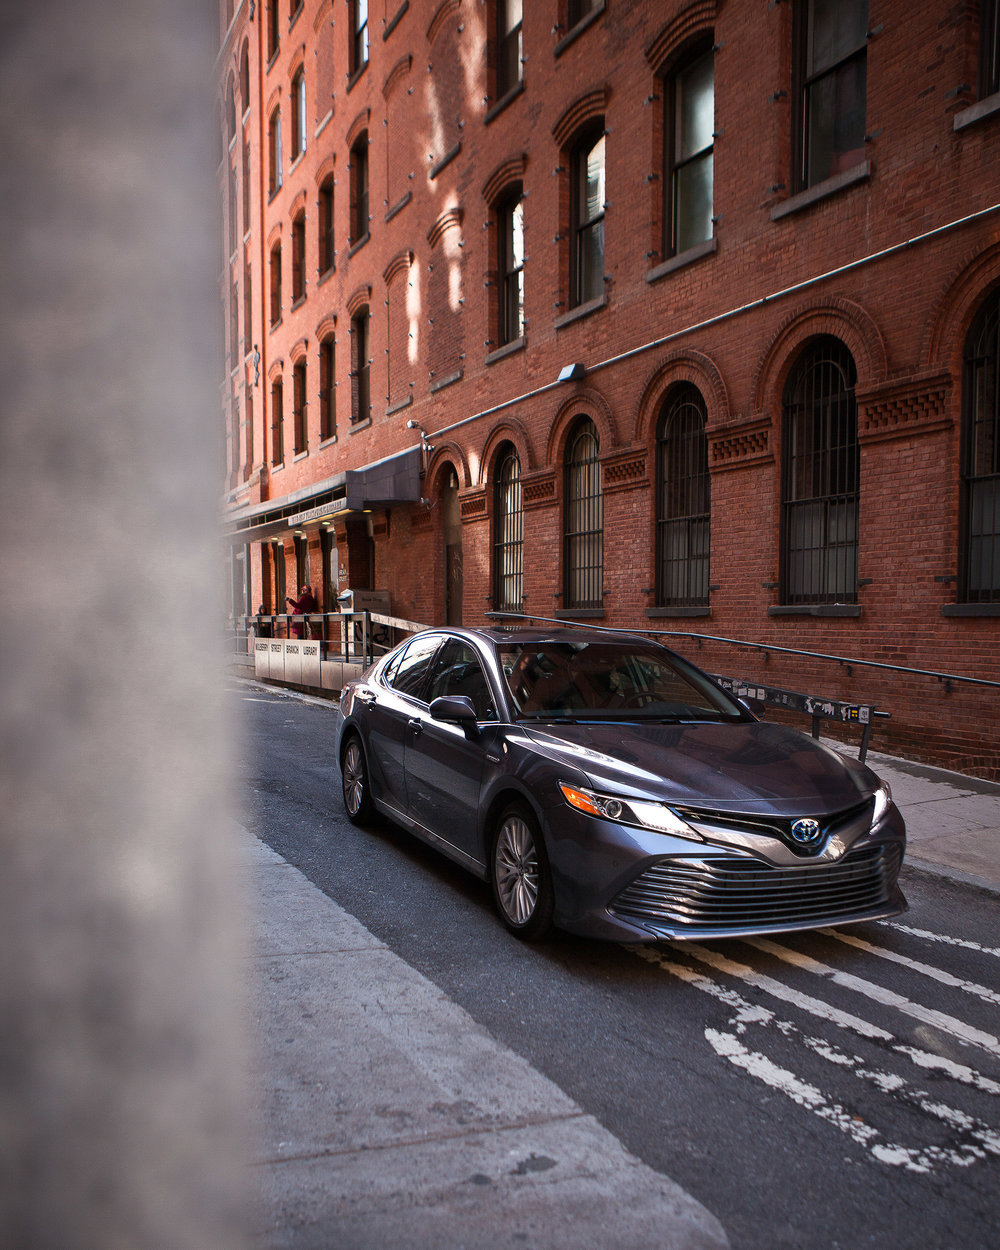 Showcasing the 2018 Camry as a work of art in New York City  -